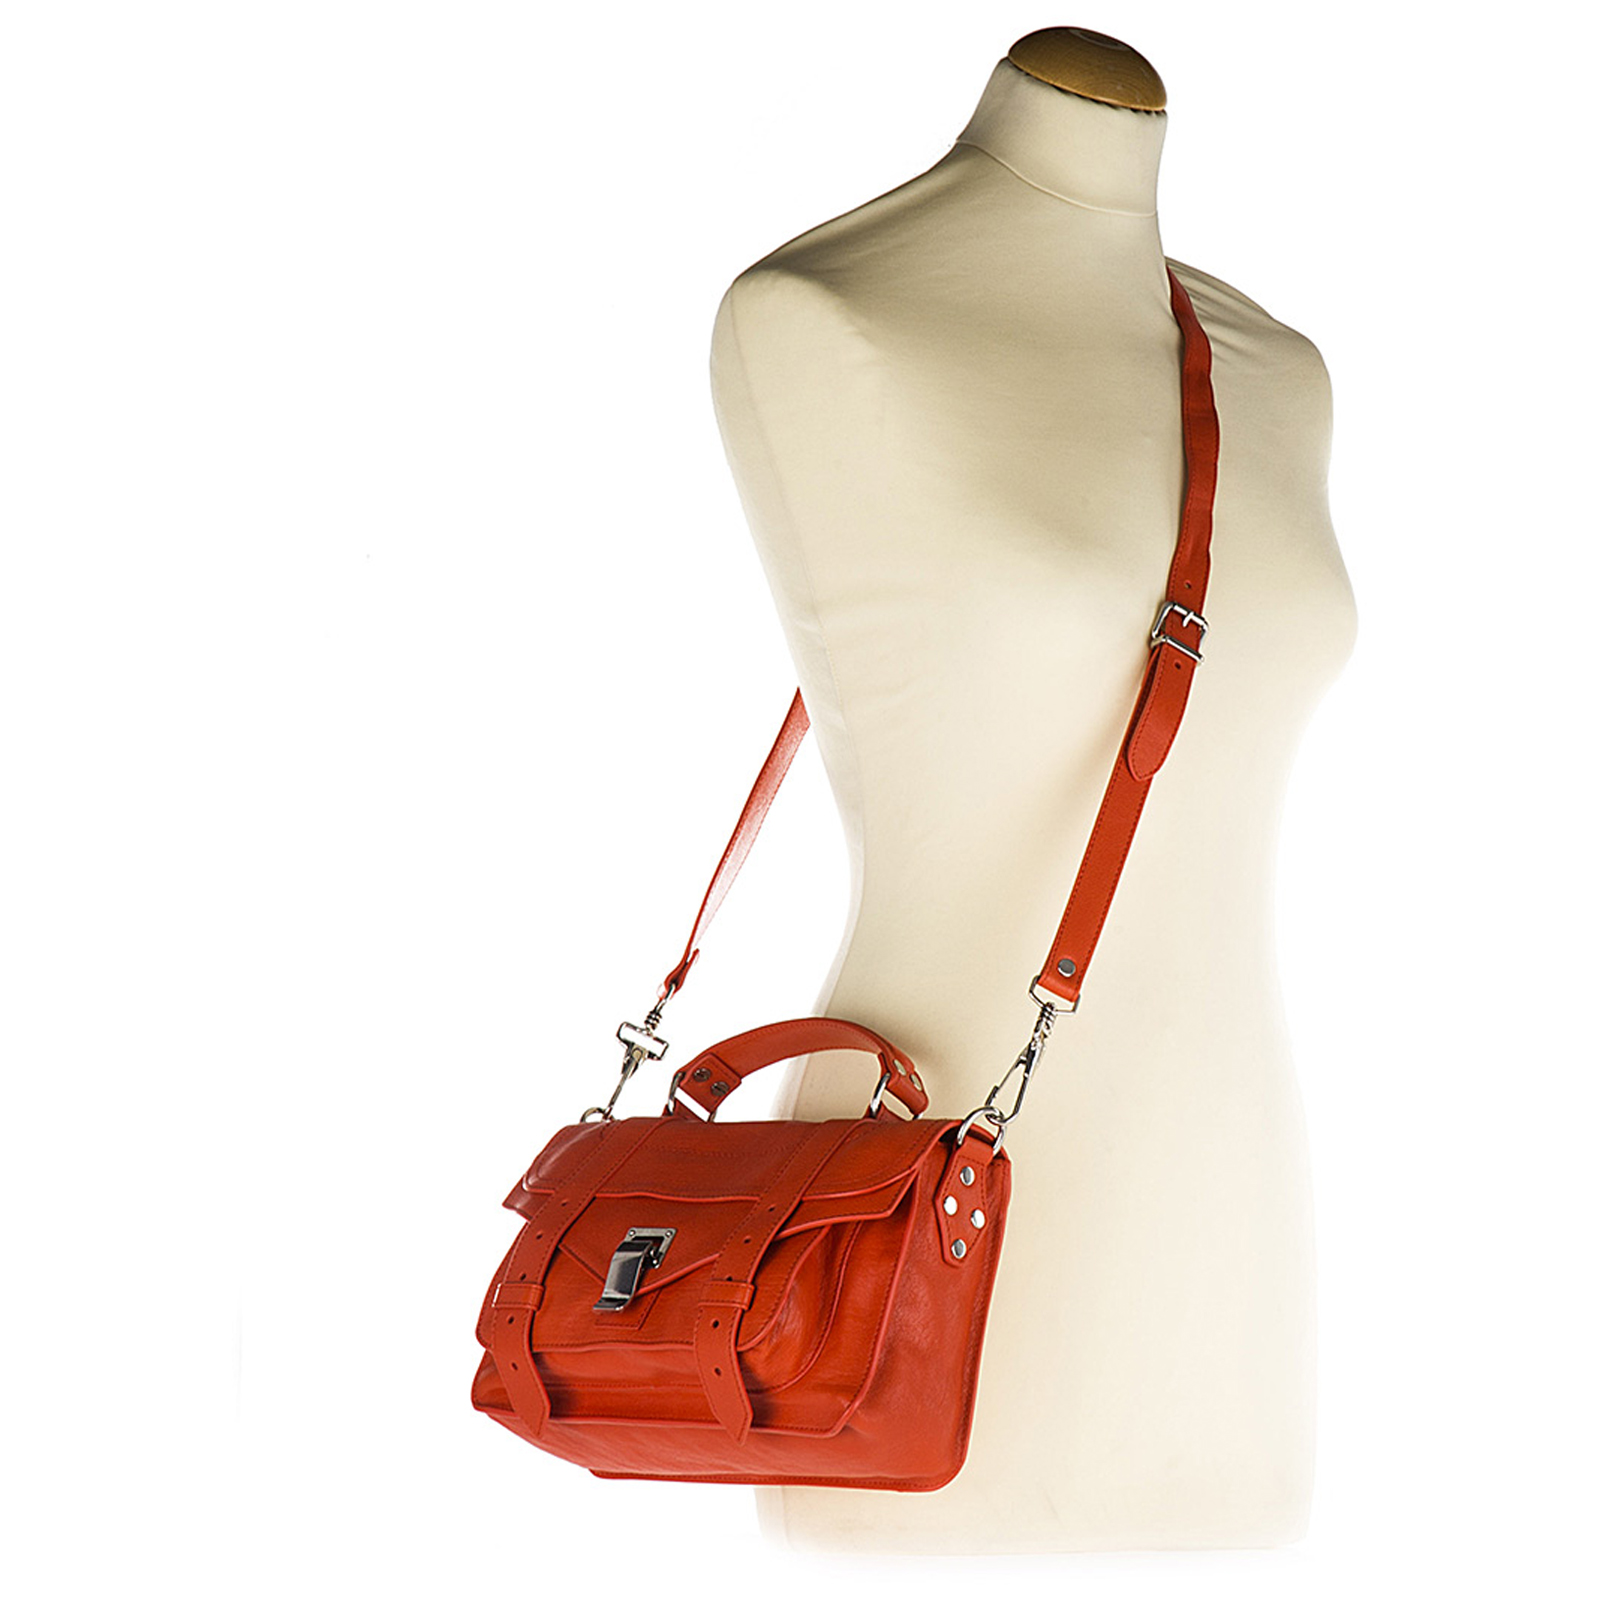 Women's leather handbag shopping bag purse tiny lux